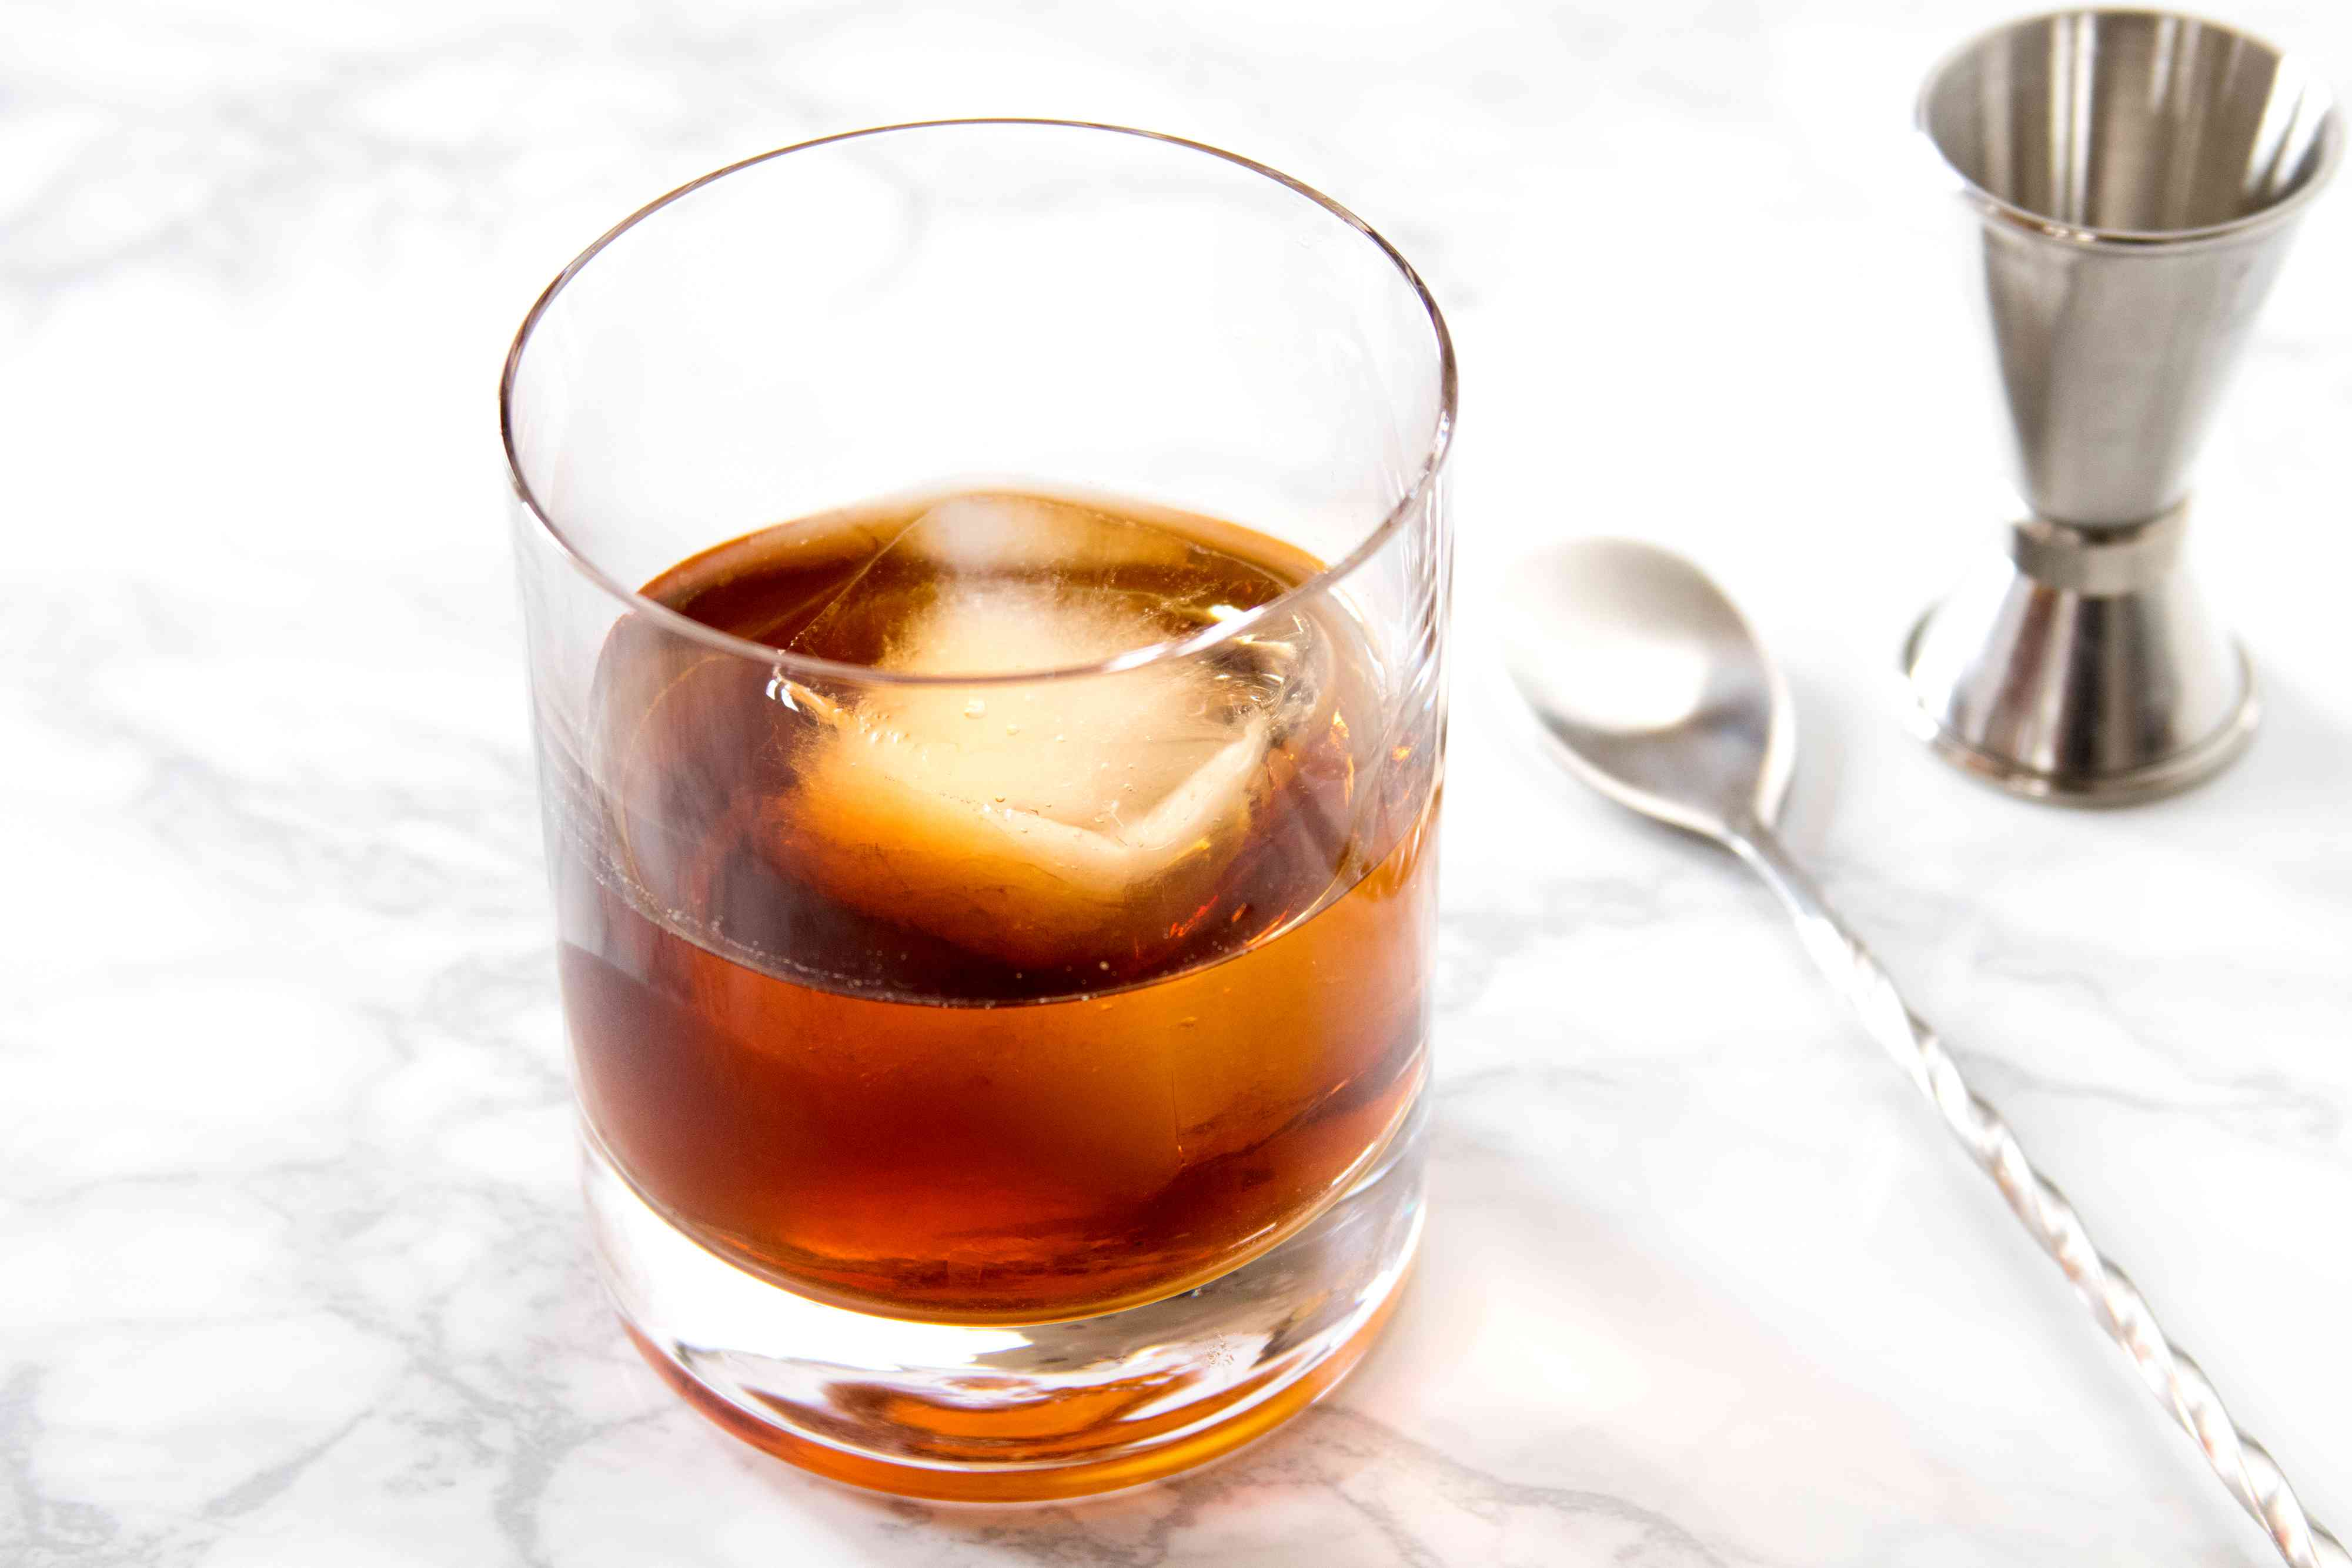 Separator Cocktail With Brandy and Coffee Liqueur